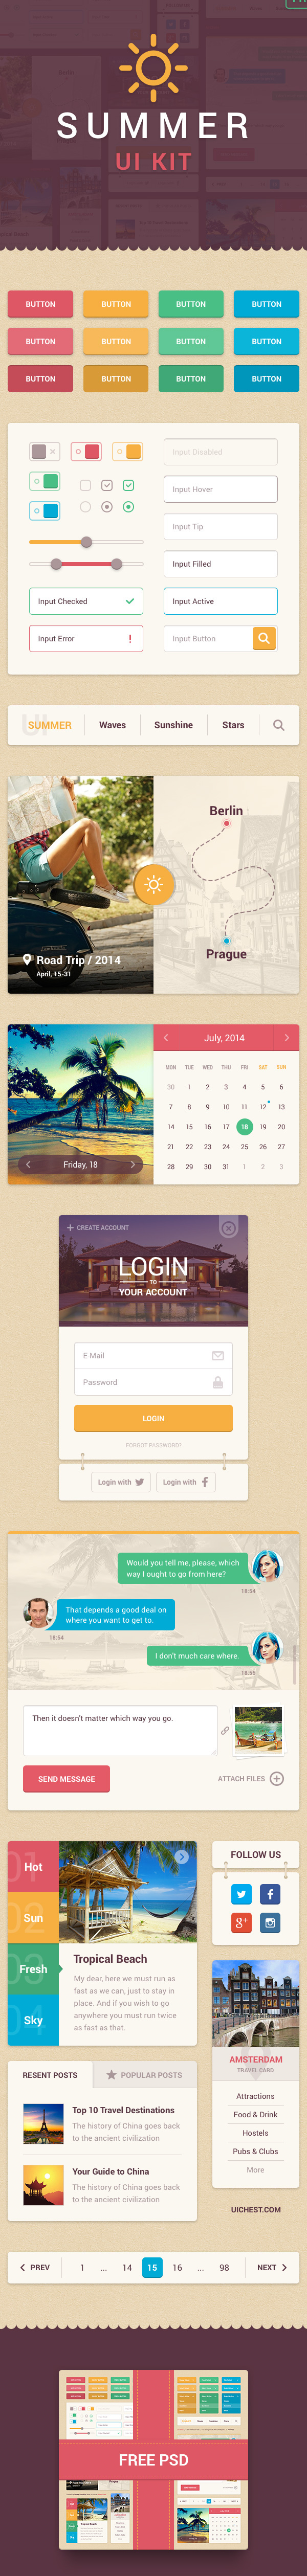 Summer Free UI Kit for Sketch and PSD Designers